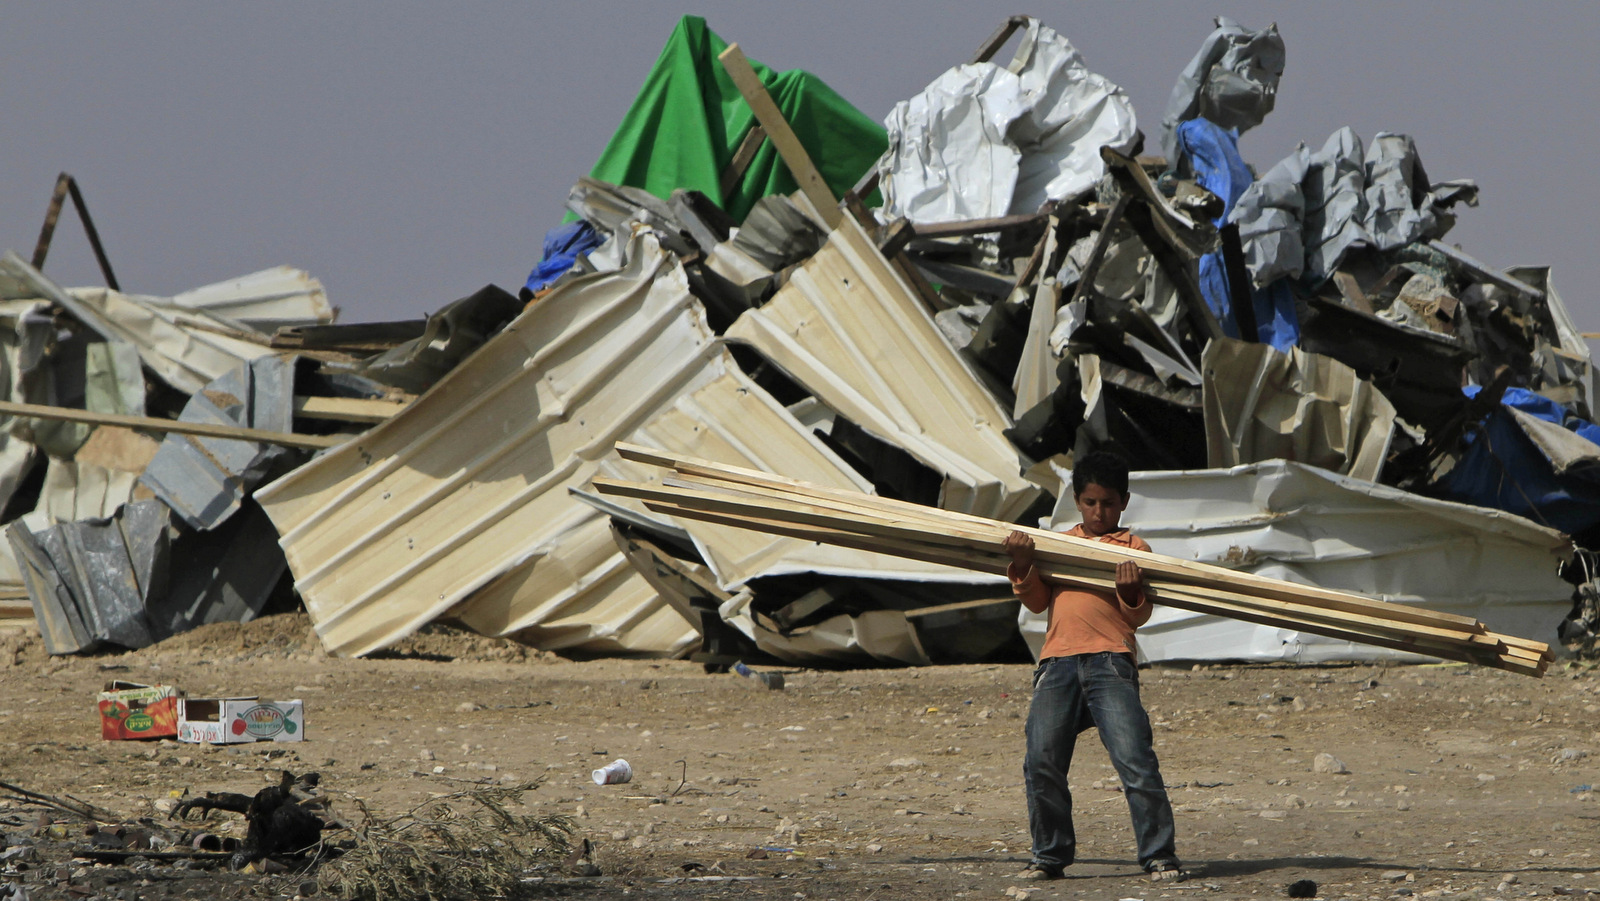 A Bedouin boy carries timber after demolished his home in the village of El Araqib near the southern Israeli city of Beersheba in 2010. (AP/Tsafrir Abayov)